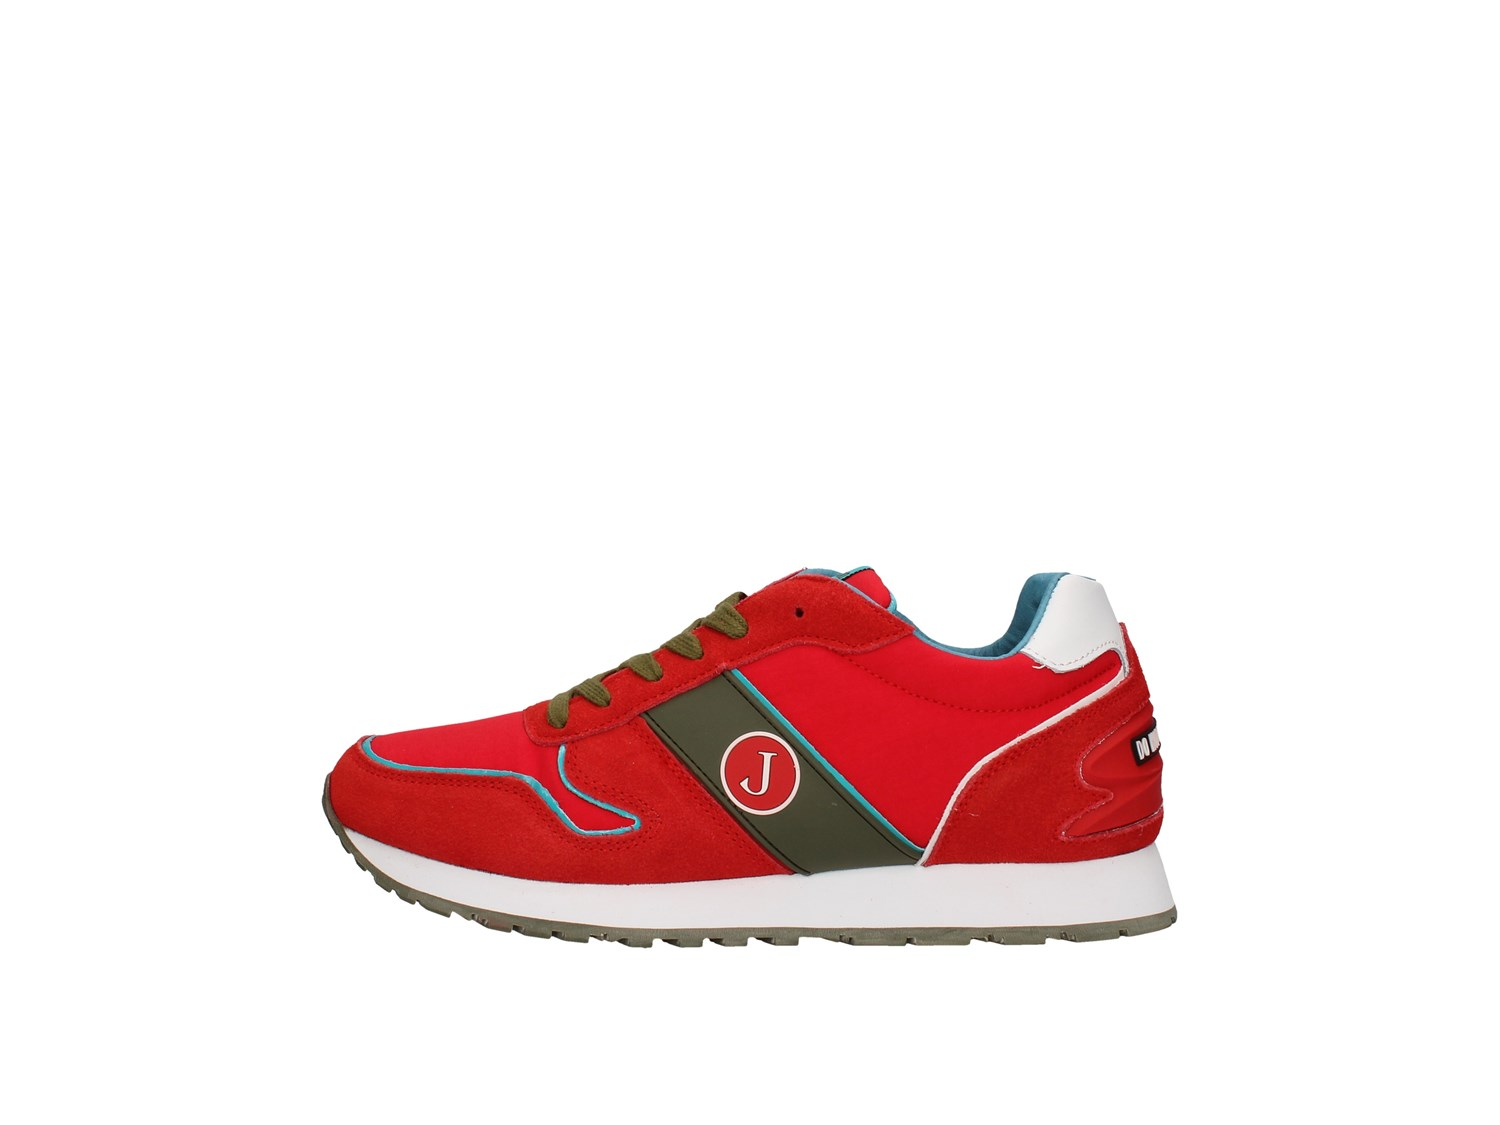 Jeckerson Jgpu041 Red Shoes Man Sneakers